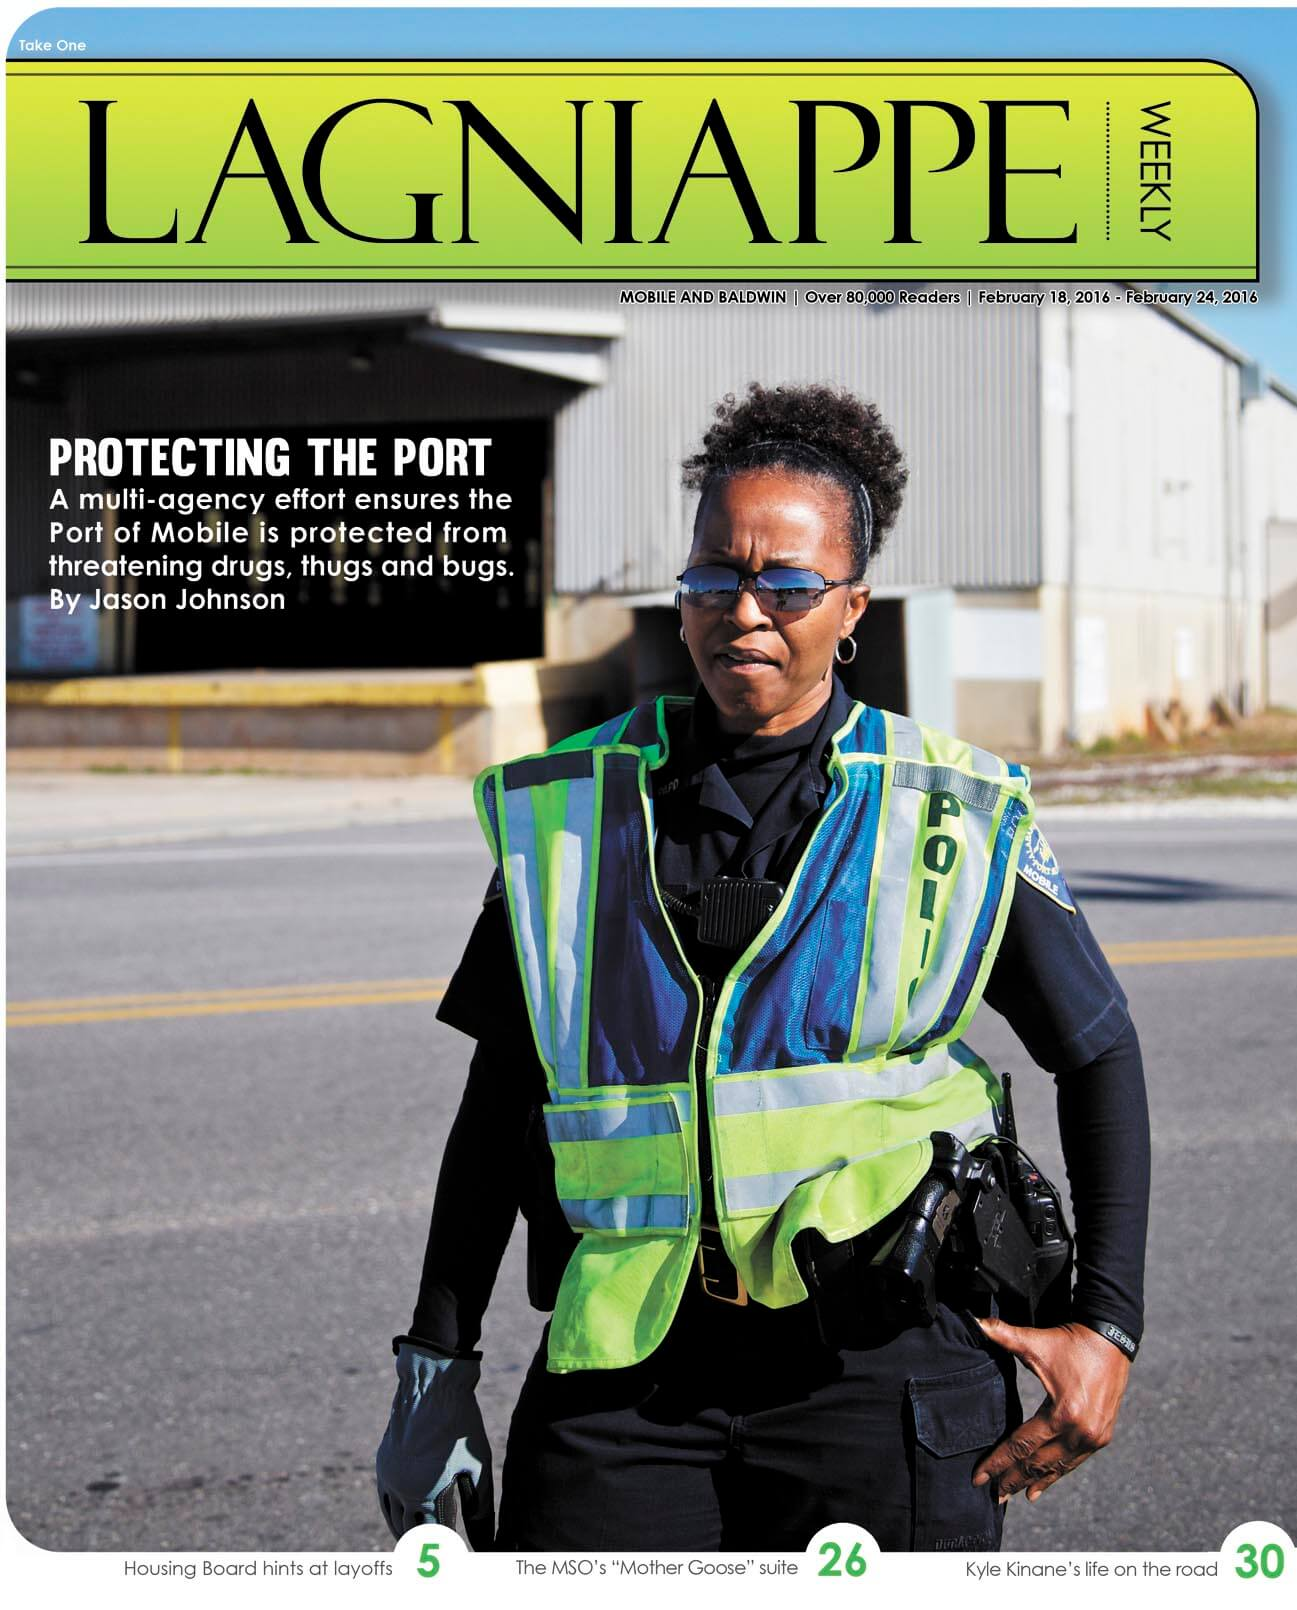 COVER STORY: 'Bugs, thugs and drugs': Stopping threats in Mobile's port